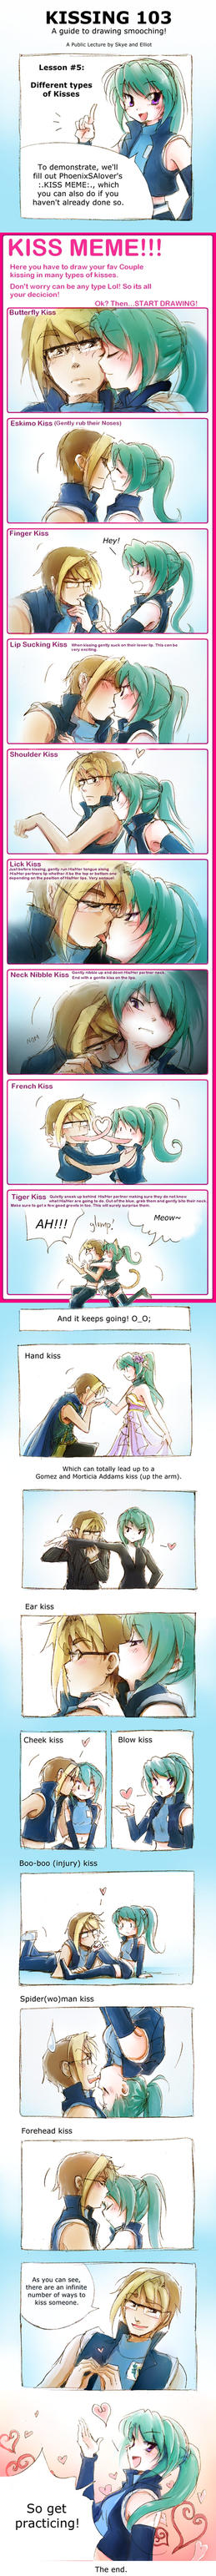 Kissing 103 by Achiru-et-al